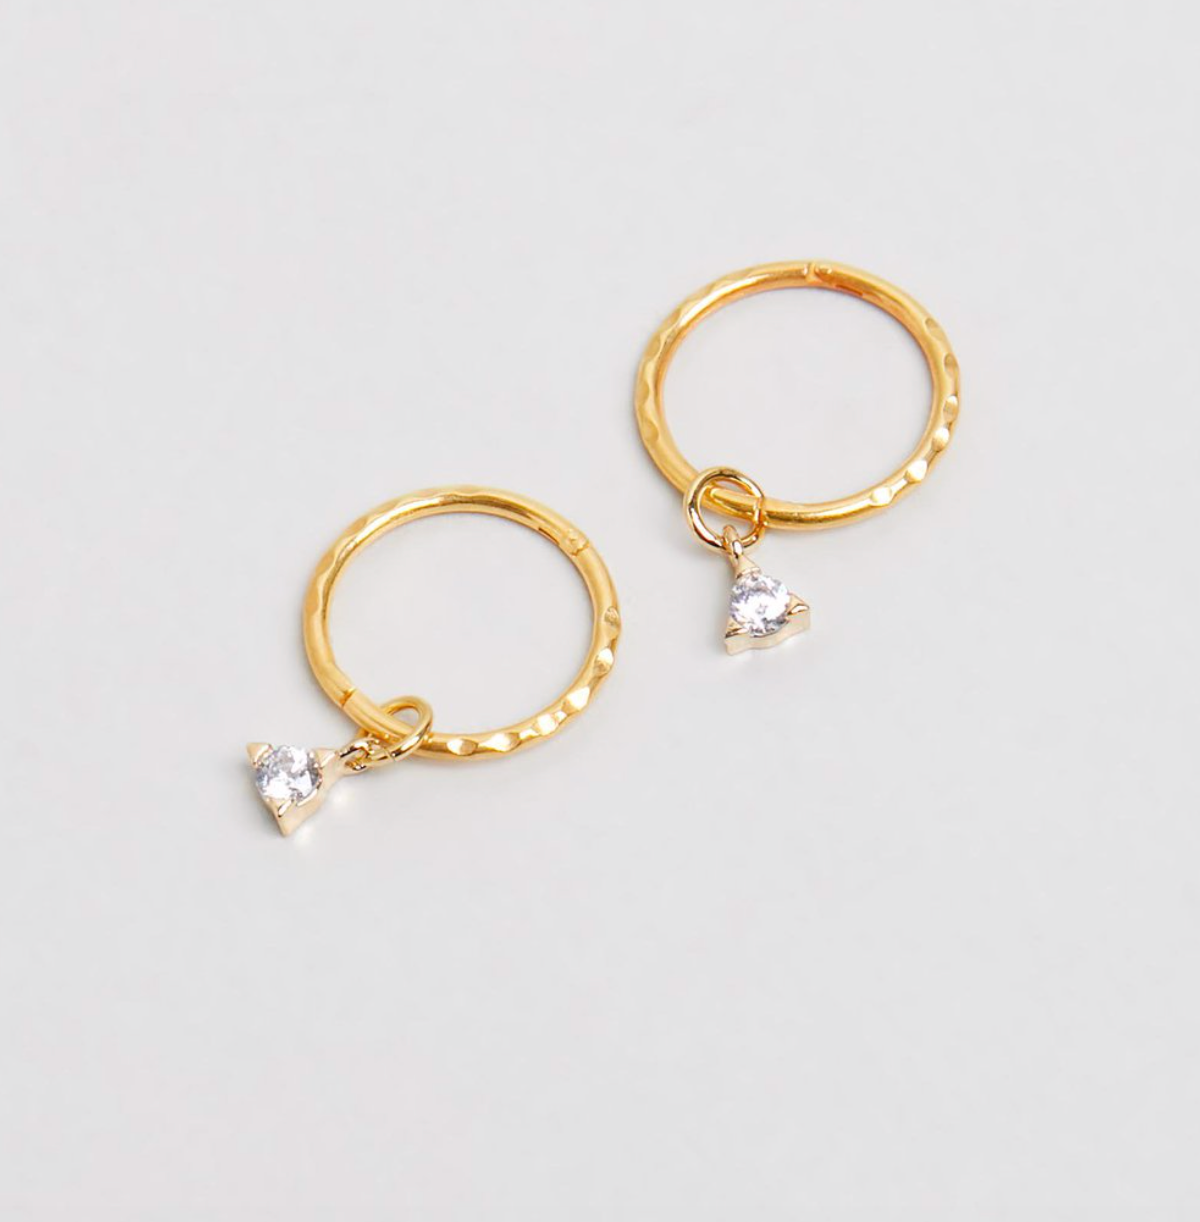 SAINT MINI HOOPS - GOLD